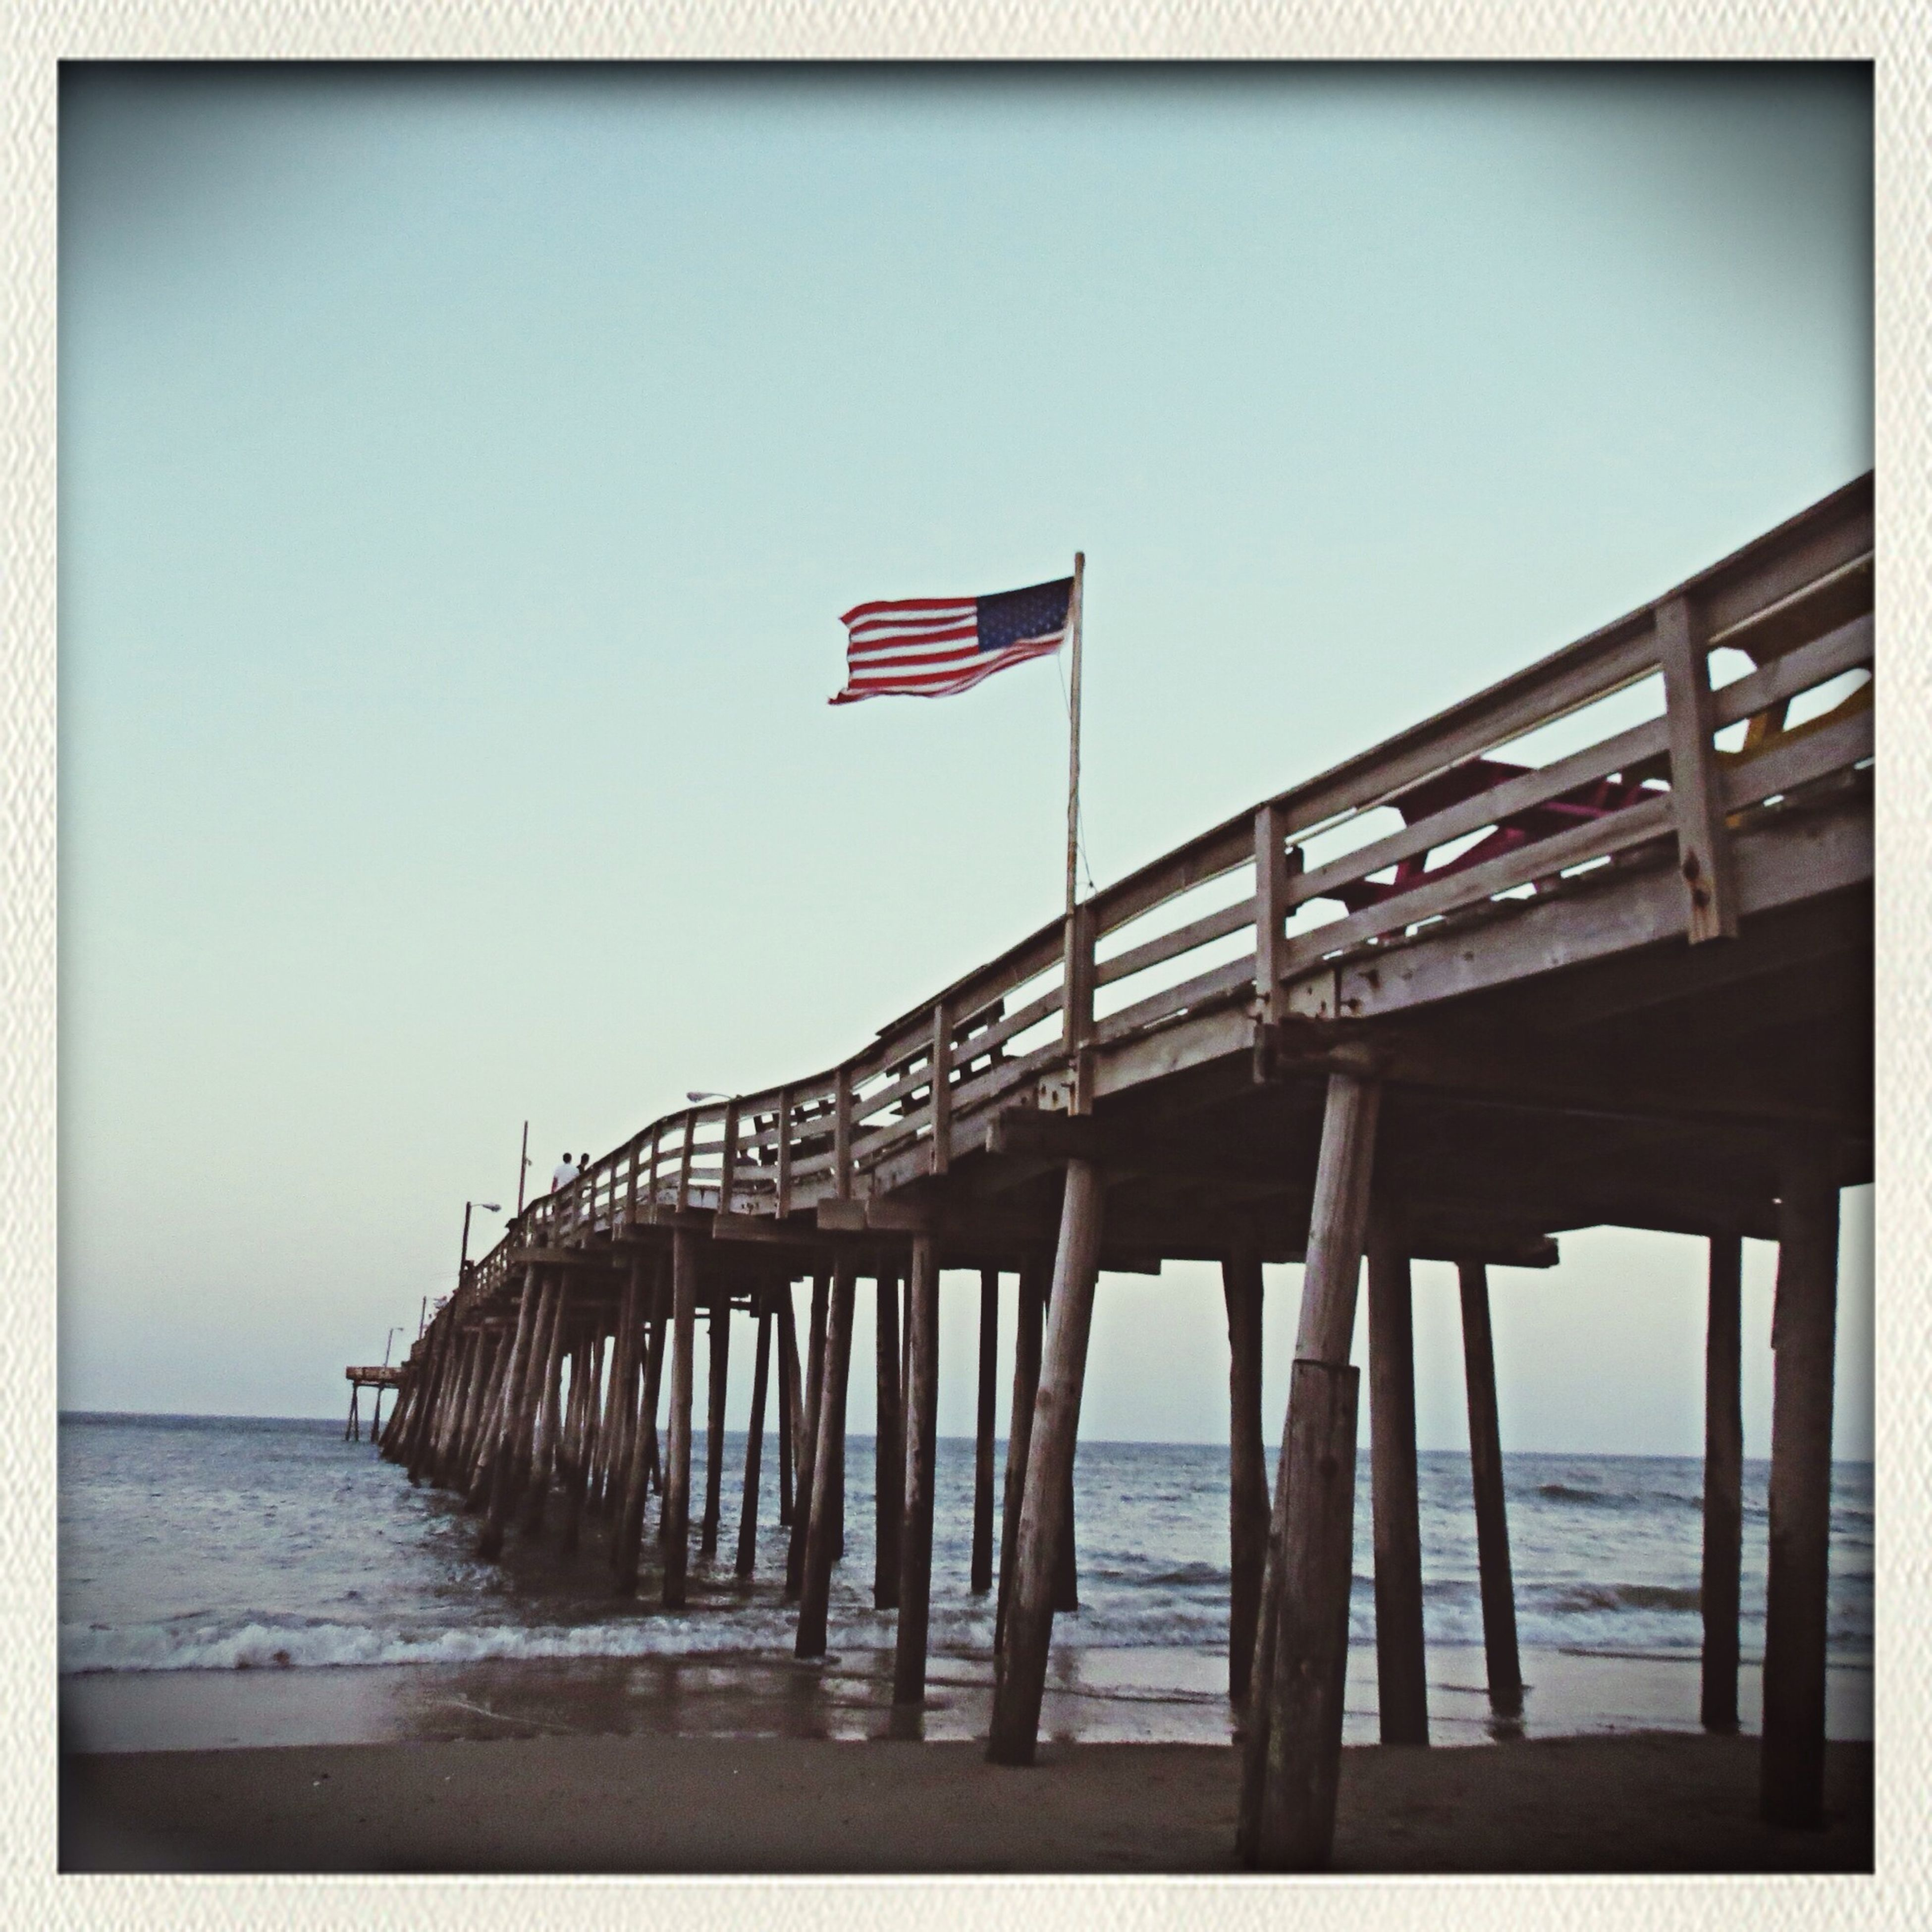 sea, water, beach, horizon over water, clear sky, built structure, copy space, flag, transfer print, shore, tranquility, architecture, sky, tranquil scene, pier, auto post production filter, sand, nature, blue, day